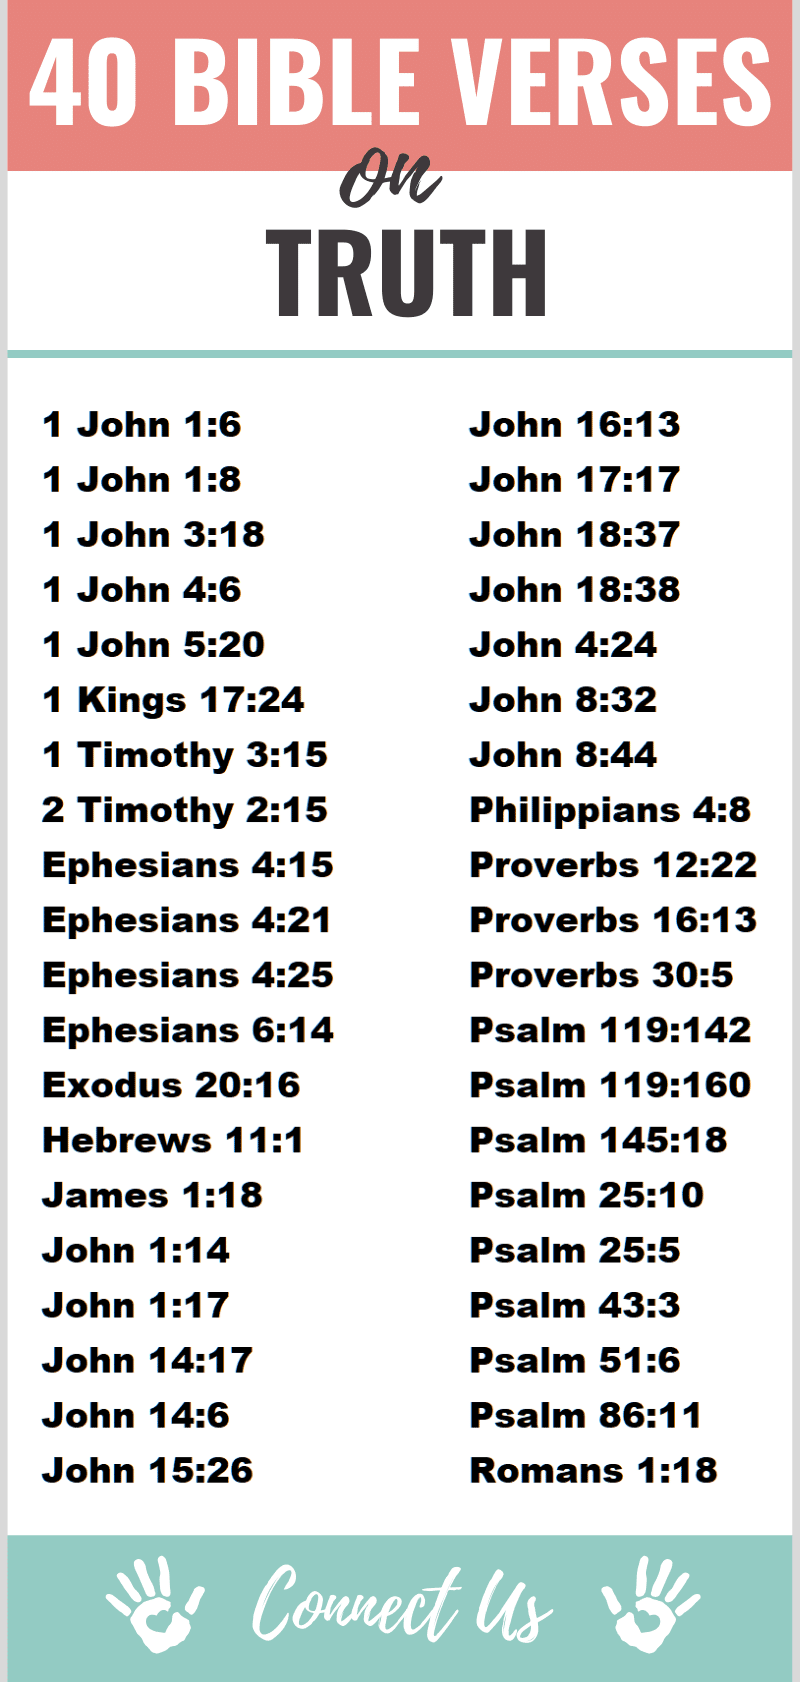 Bible Verses on Truth